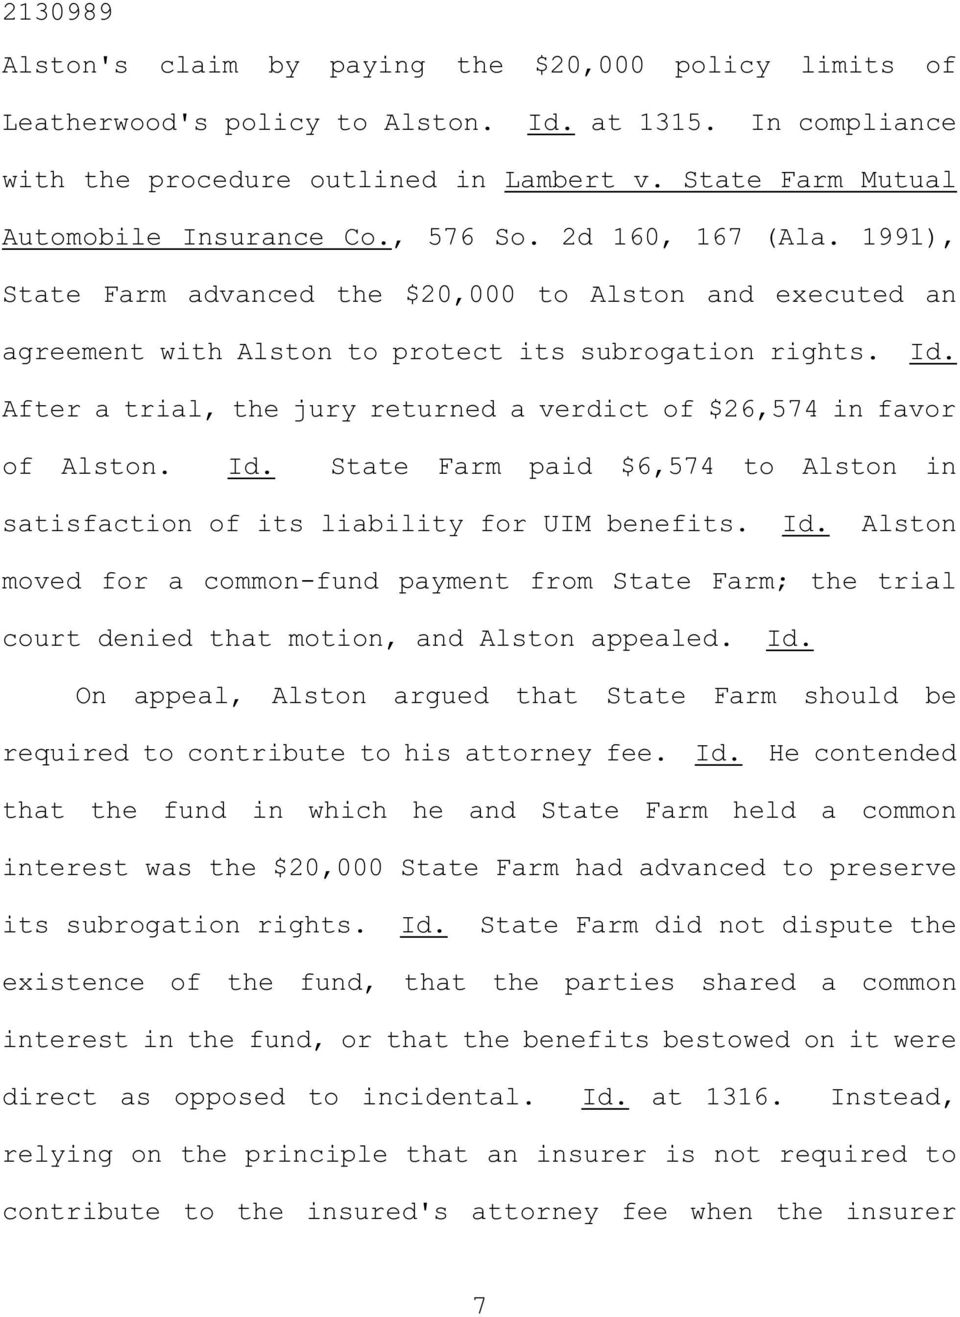 After a trial, the jury returned a verdict of $26,574 in favor of Alston. Id. State Farm paid $6,574 to Alston in satisfaction of its liability for UIM benefits. Id. Alston moved for a common-fund payment from State Farm; the trial court denied that motion, and Alston appealed.